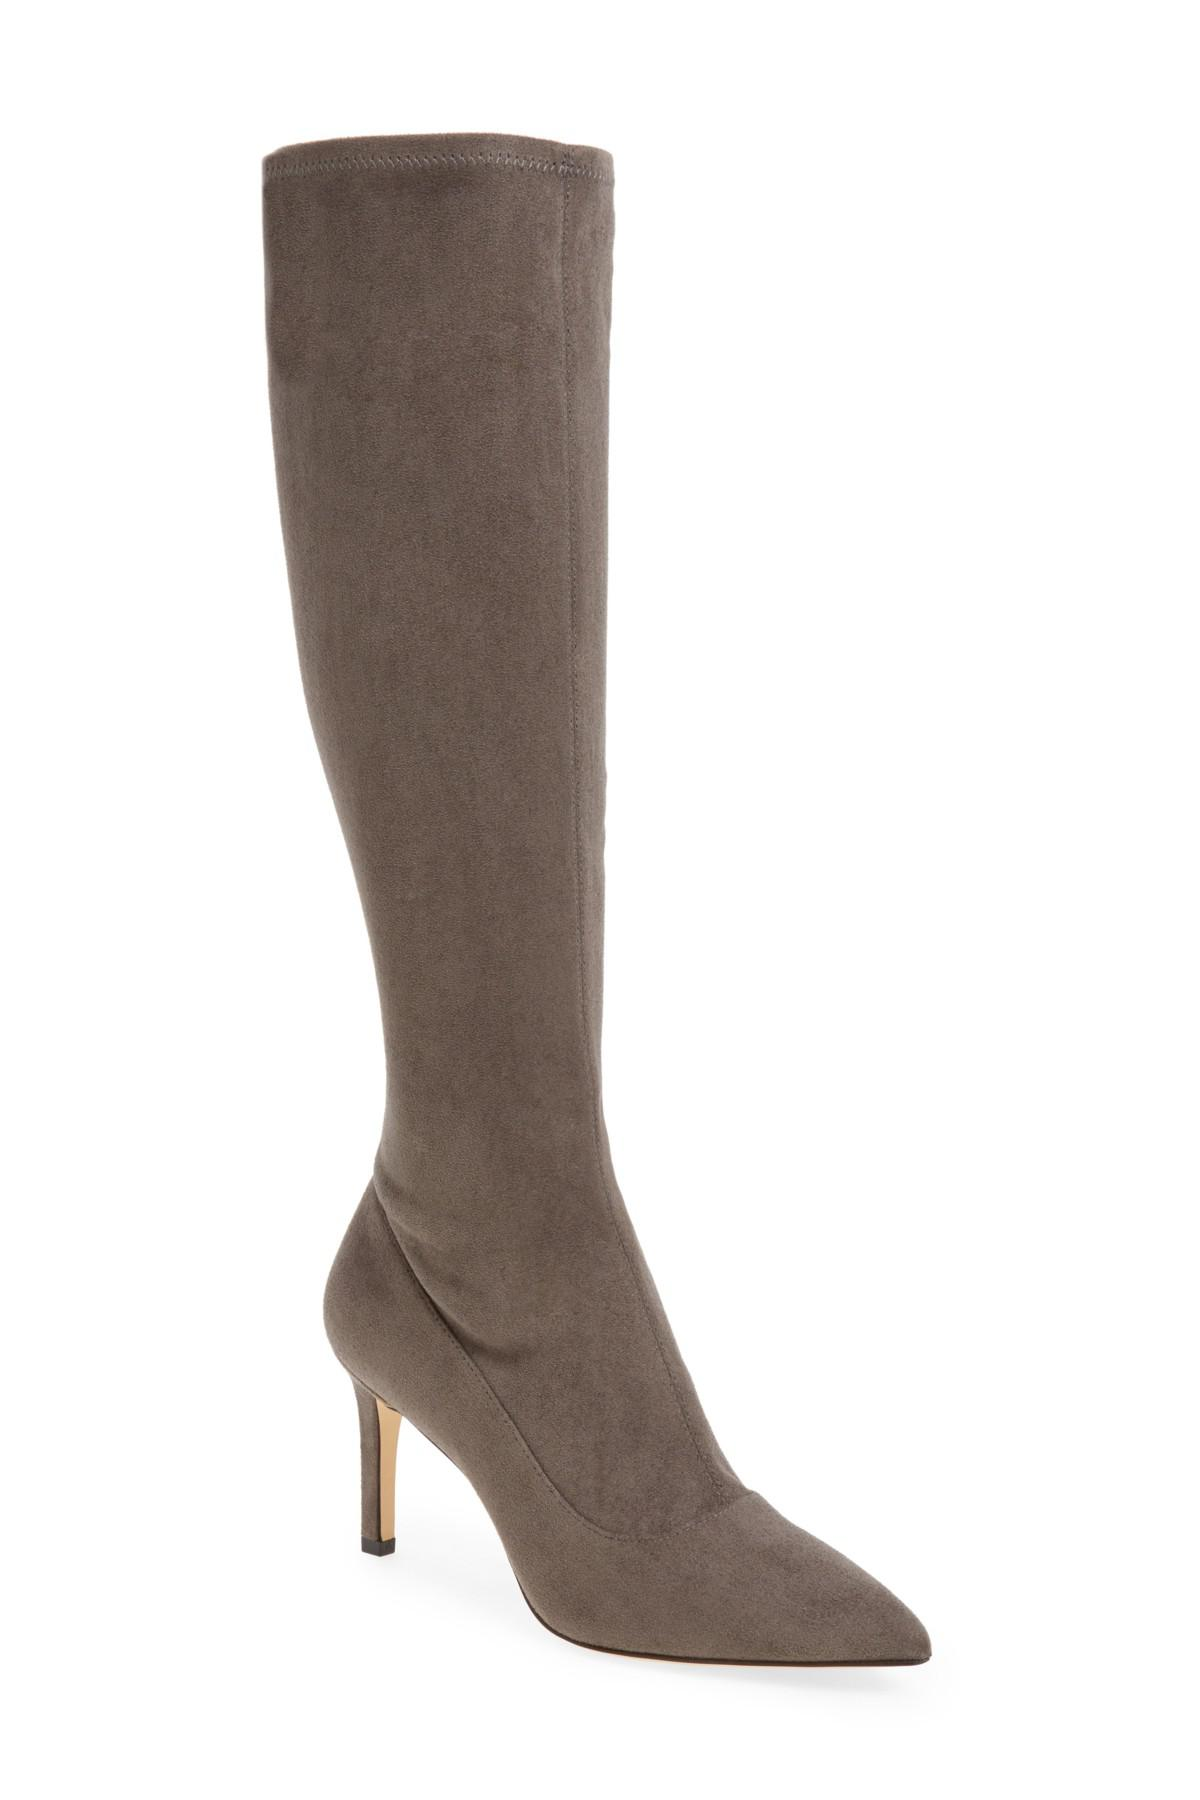 nine west carrara knee high pointy toe boot in gray lyst